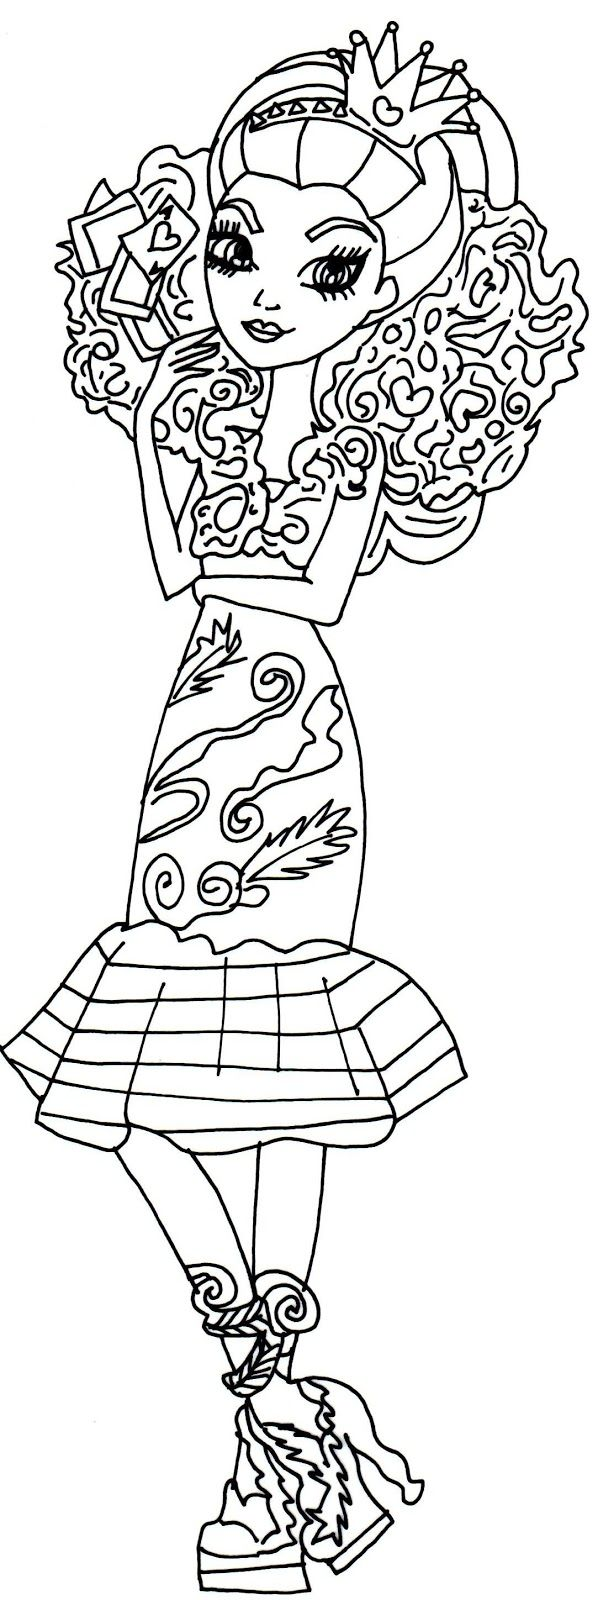 Coloring page queen of hearts - Coloring Page Queen Of Hearts